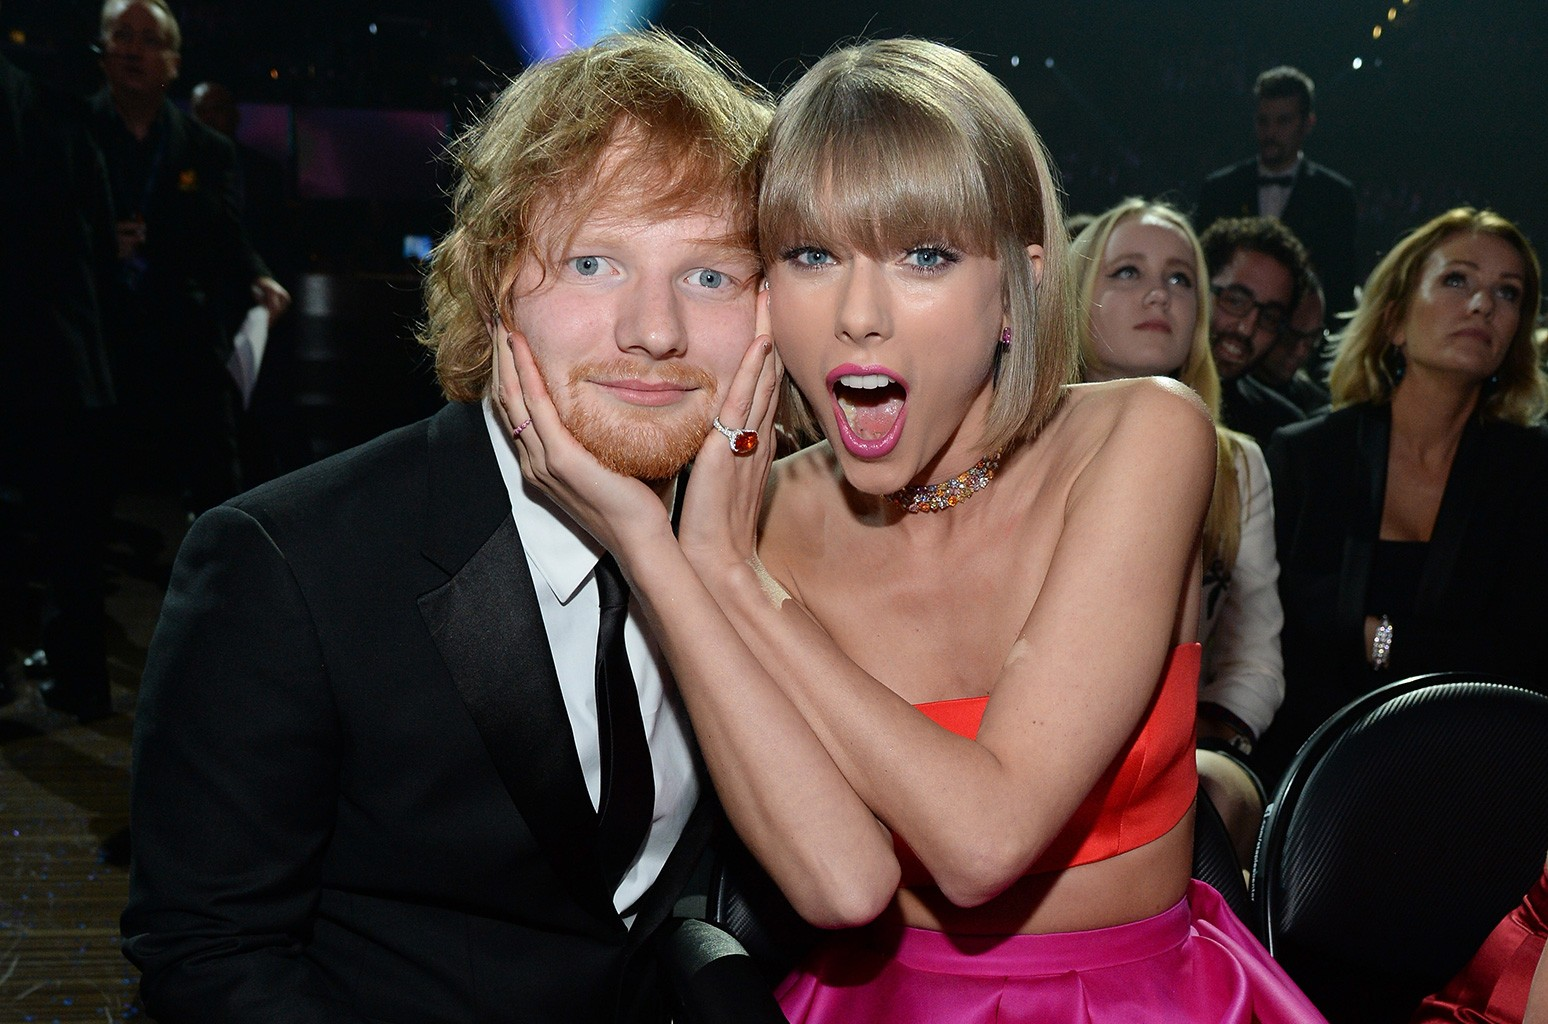 Ed Sheeran and Taylor Swift attend The 58th Grammy Awards at Staples Center on Feb. 15, 2016 in Los Angeles.